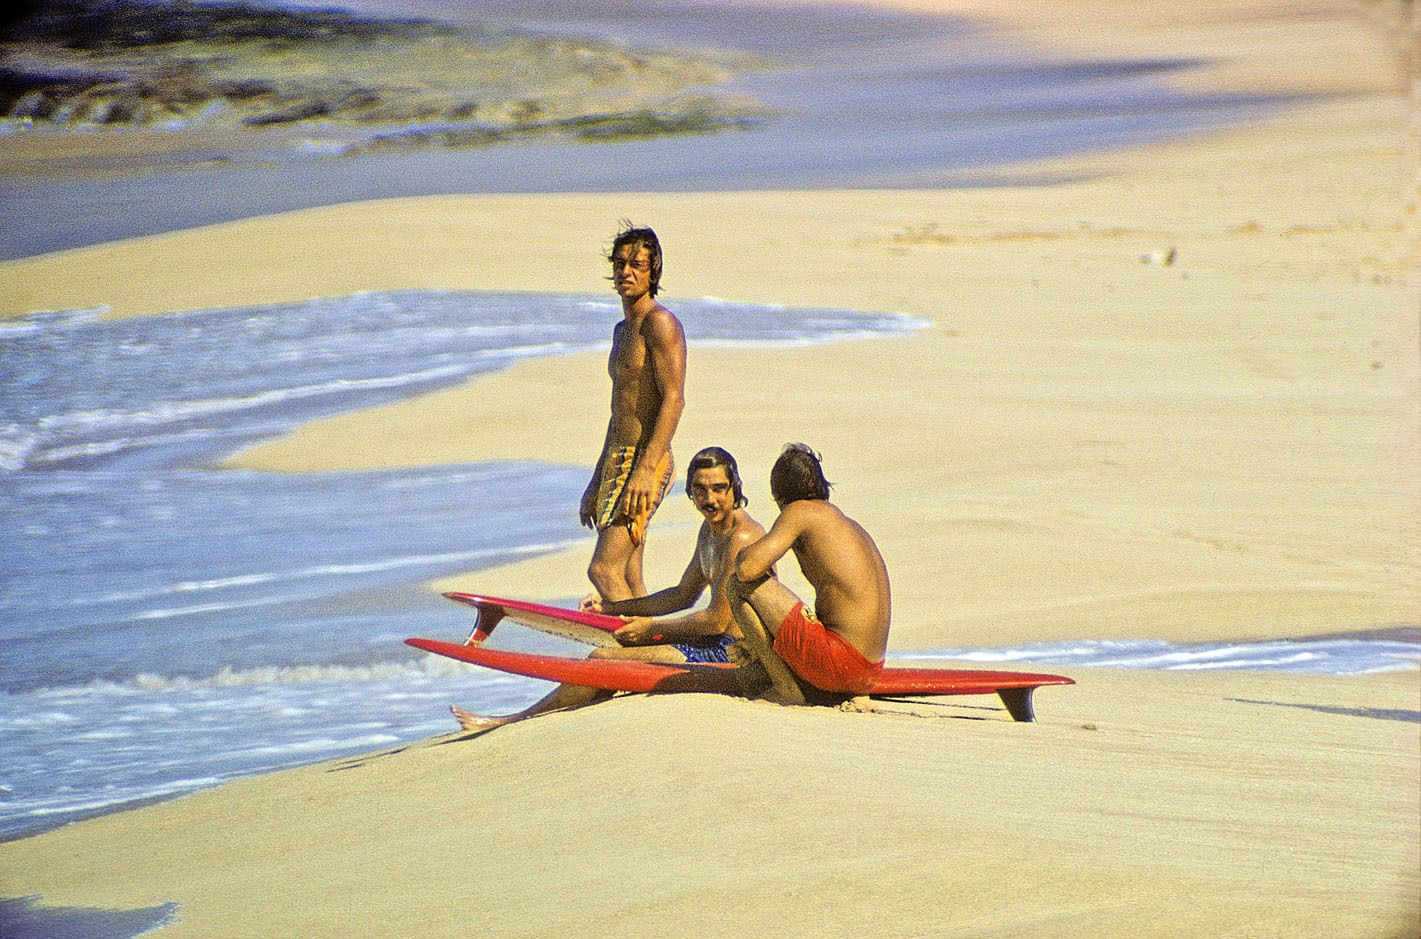 HERBIE FLETCHER, GERRY LOPEZ,BARRY KANIAUPUNI, SUNSET BEACH OAHU, HI. 1971.